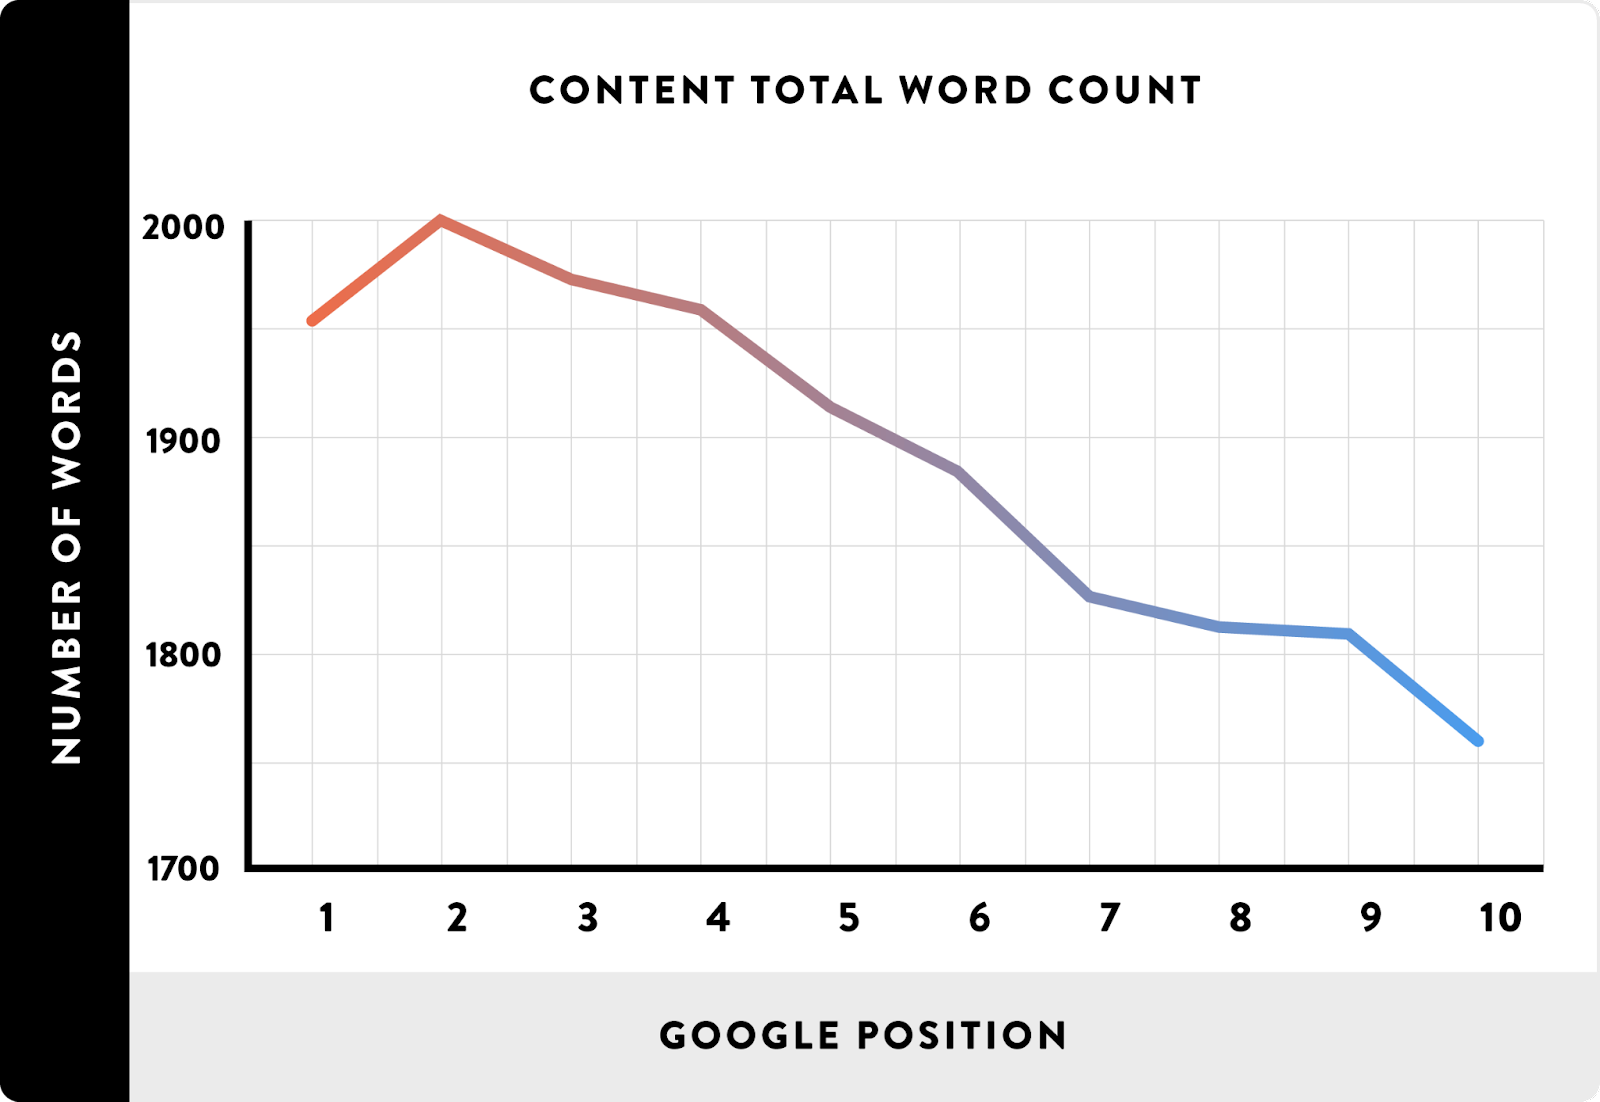 A chart showing correlation between ranking and the total content words.